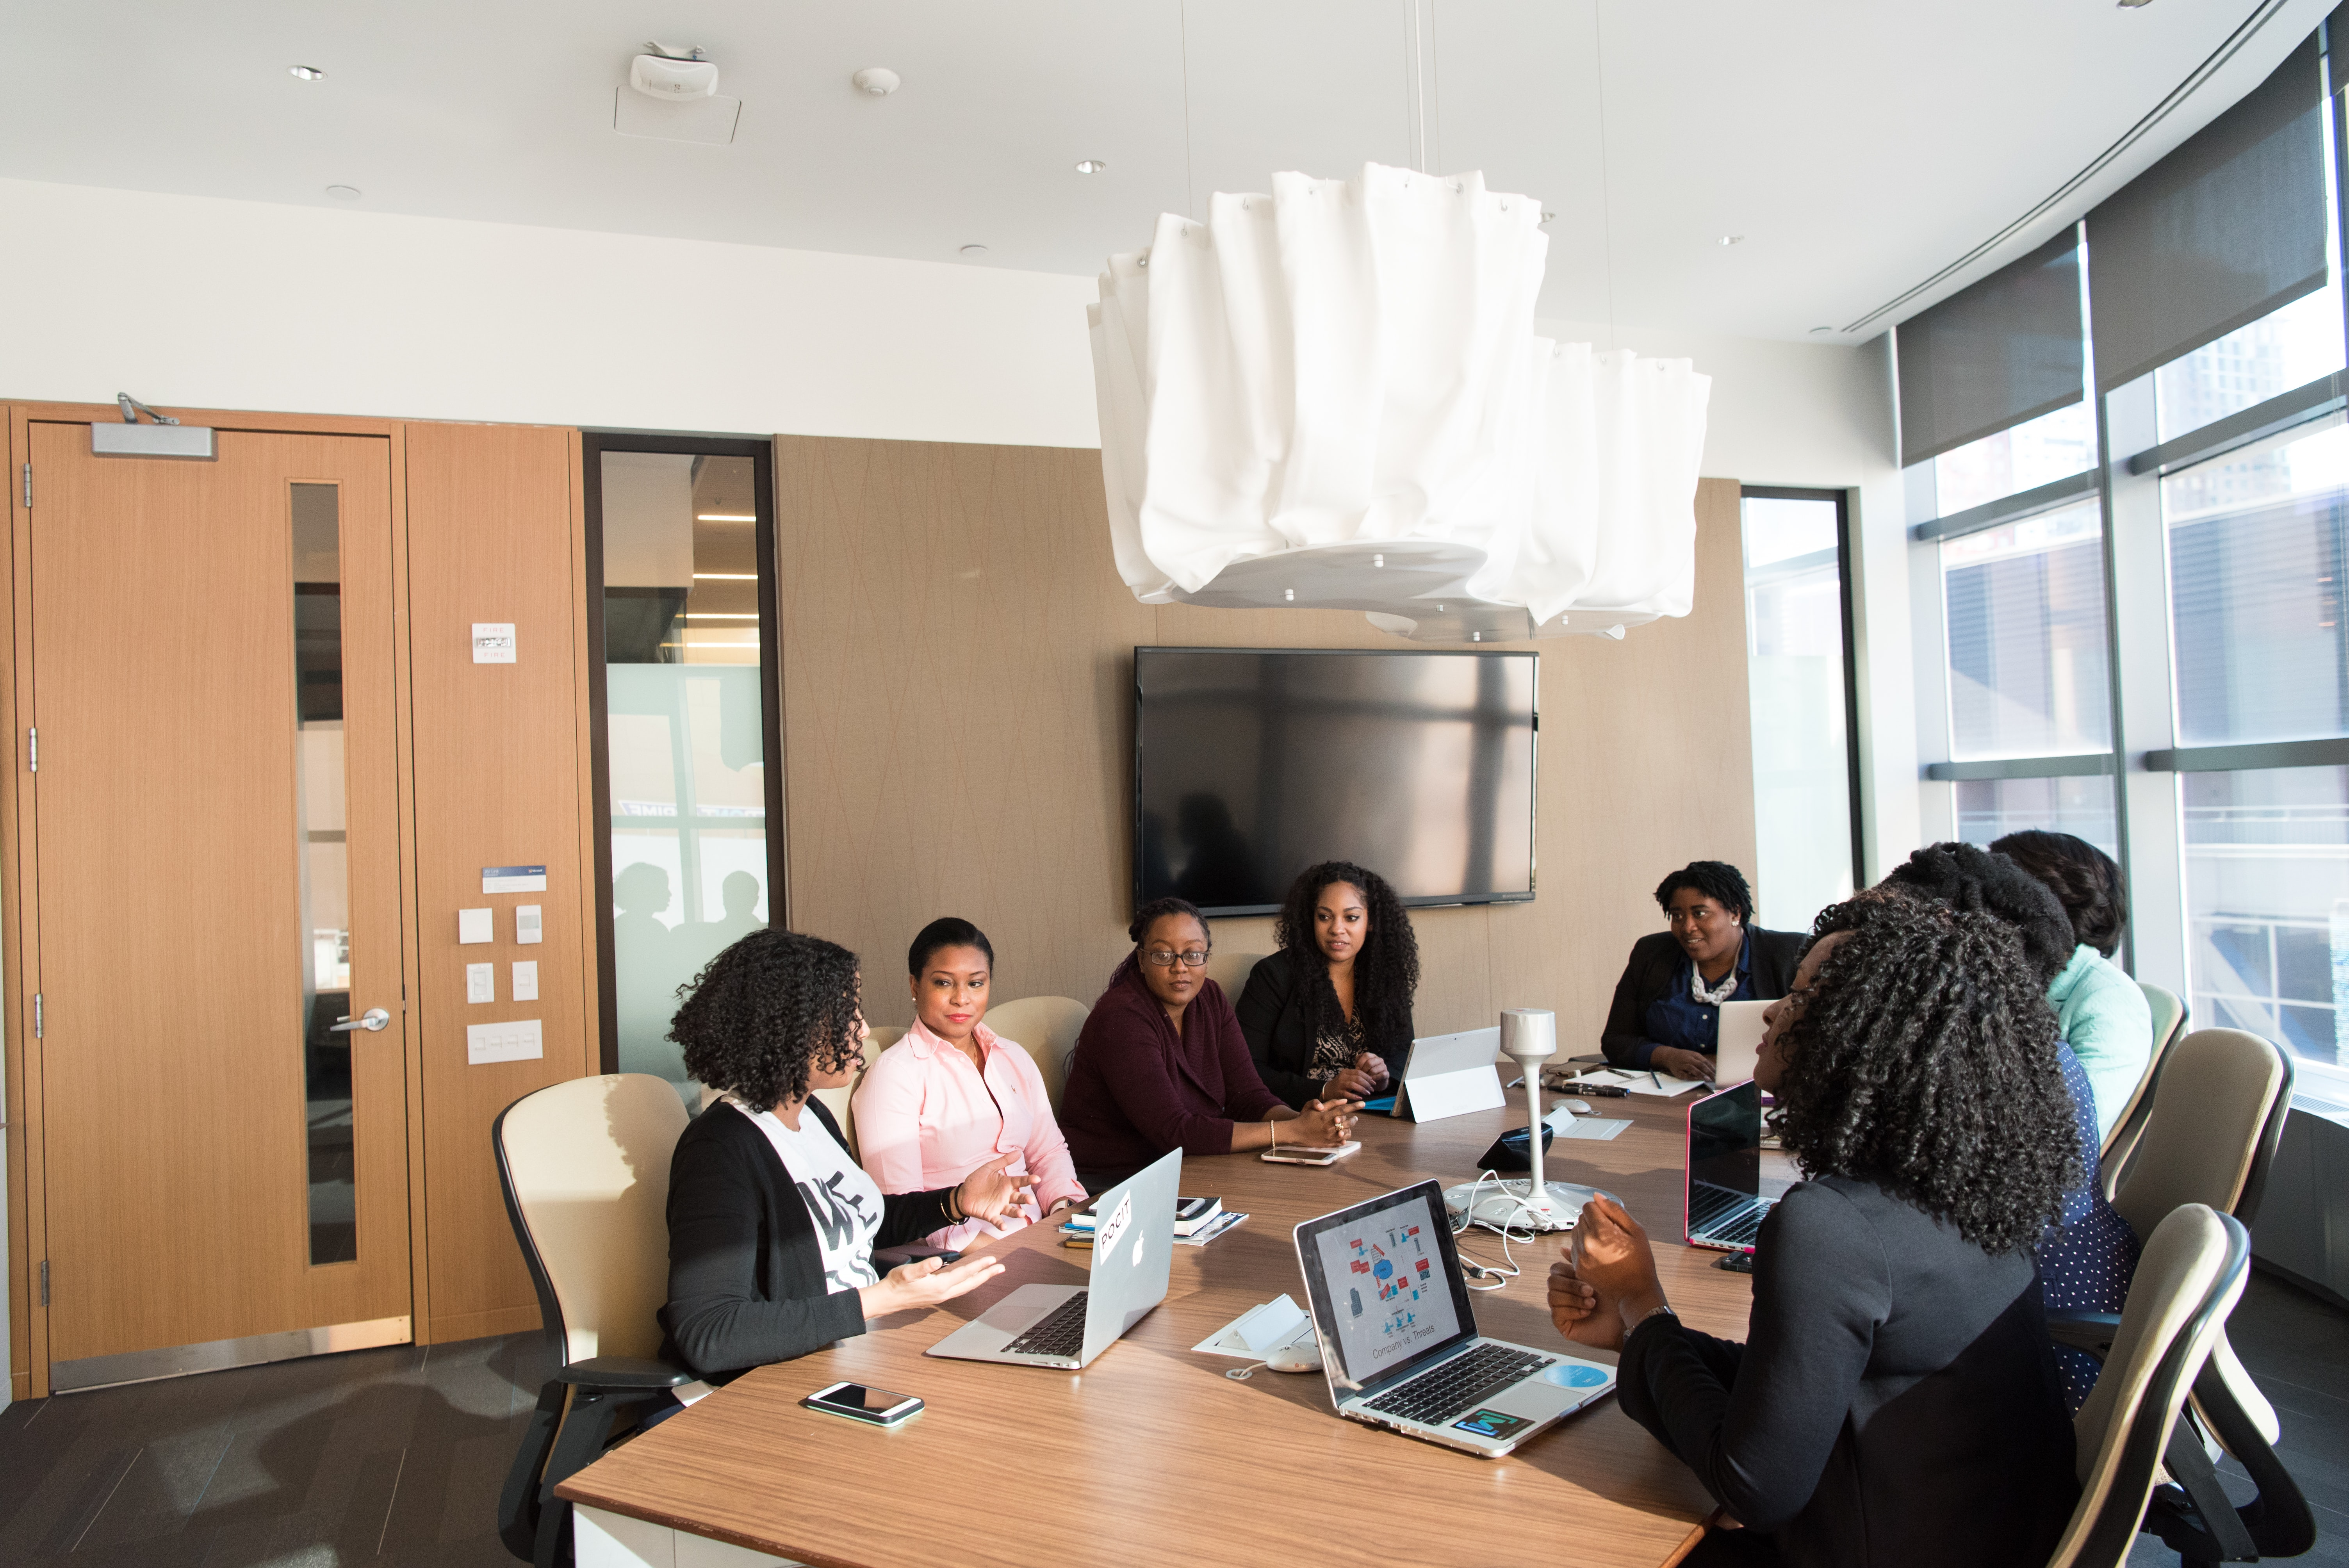 Black colleagues in a meeting room having a conversation.